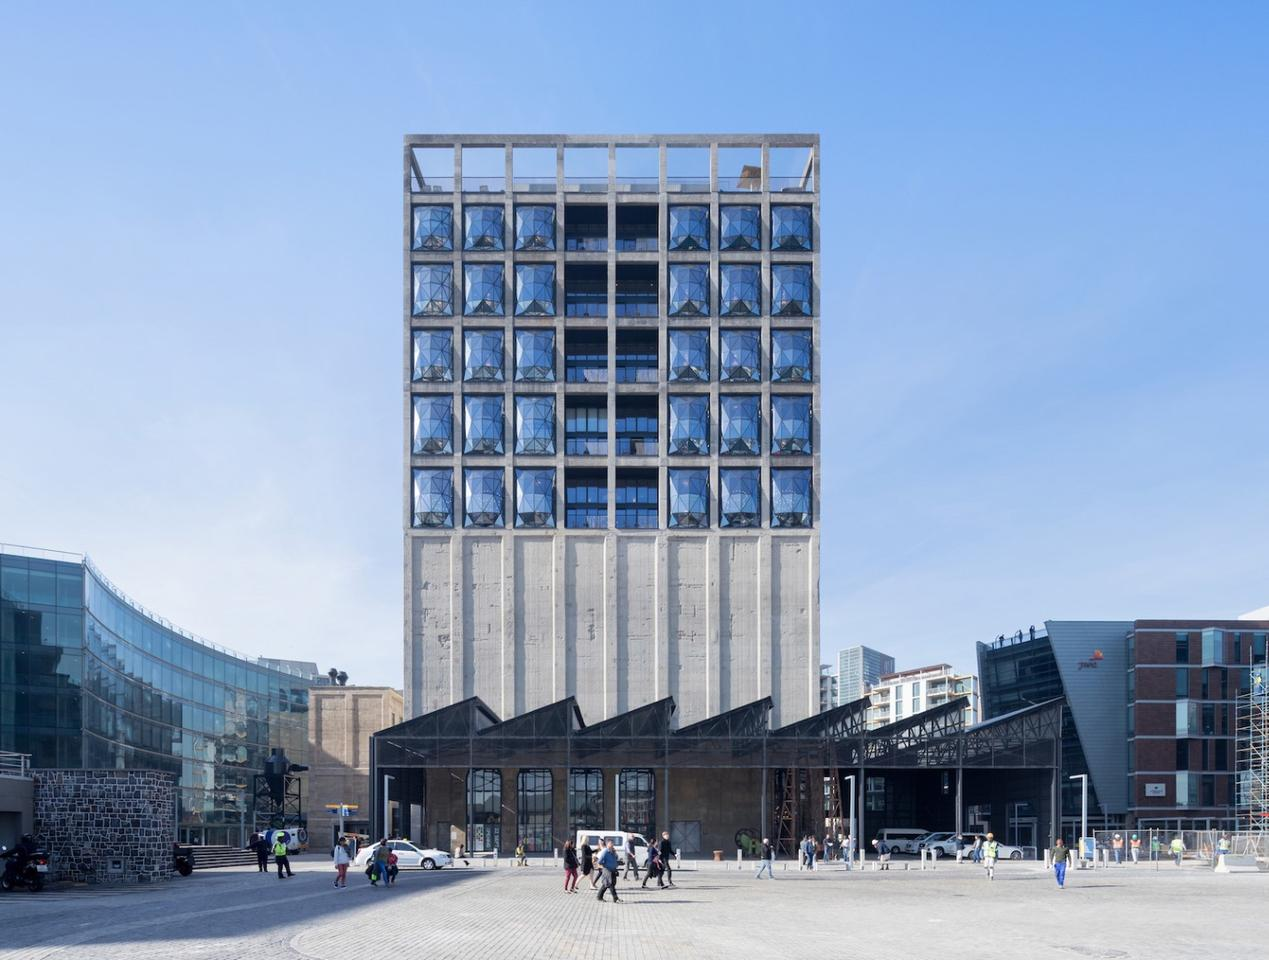 The Zeitz MOCAA building houses a museum and a luxury hotel